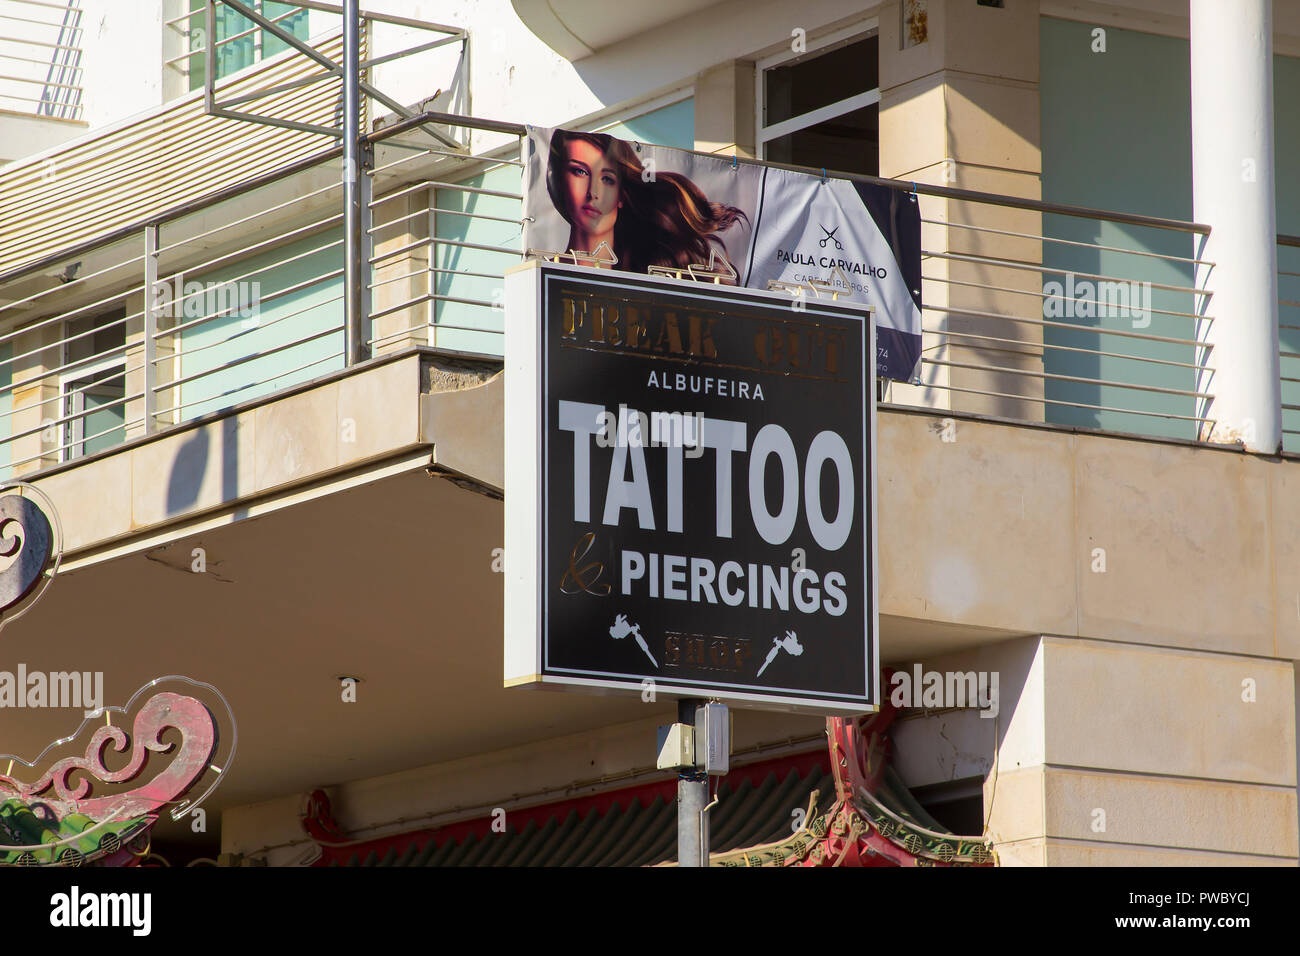 1 October 2018 Shop display sign for a Tatoo Salon and canvas poster advertising a hairdressers salon. Located on The Strip in Albuferia Portugal. - Stock Image